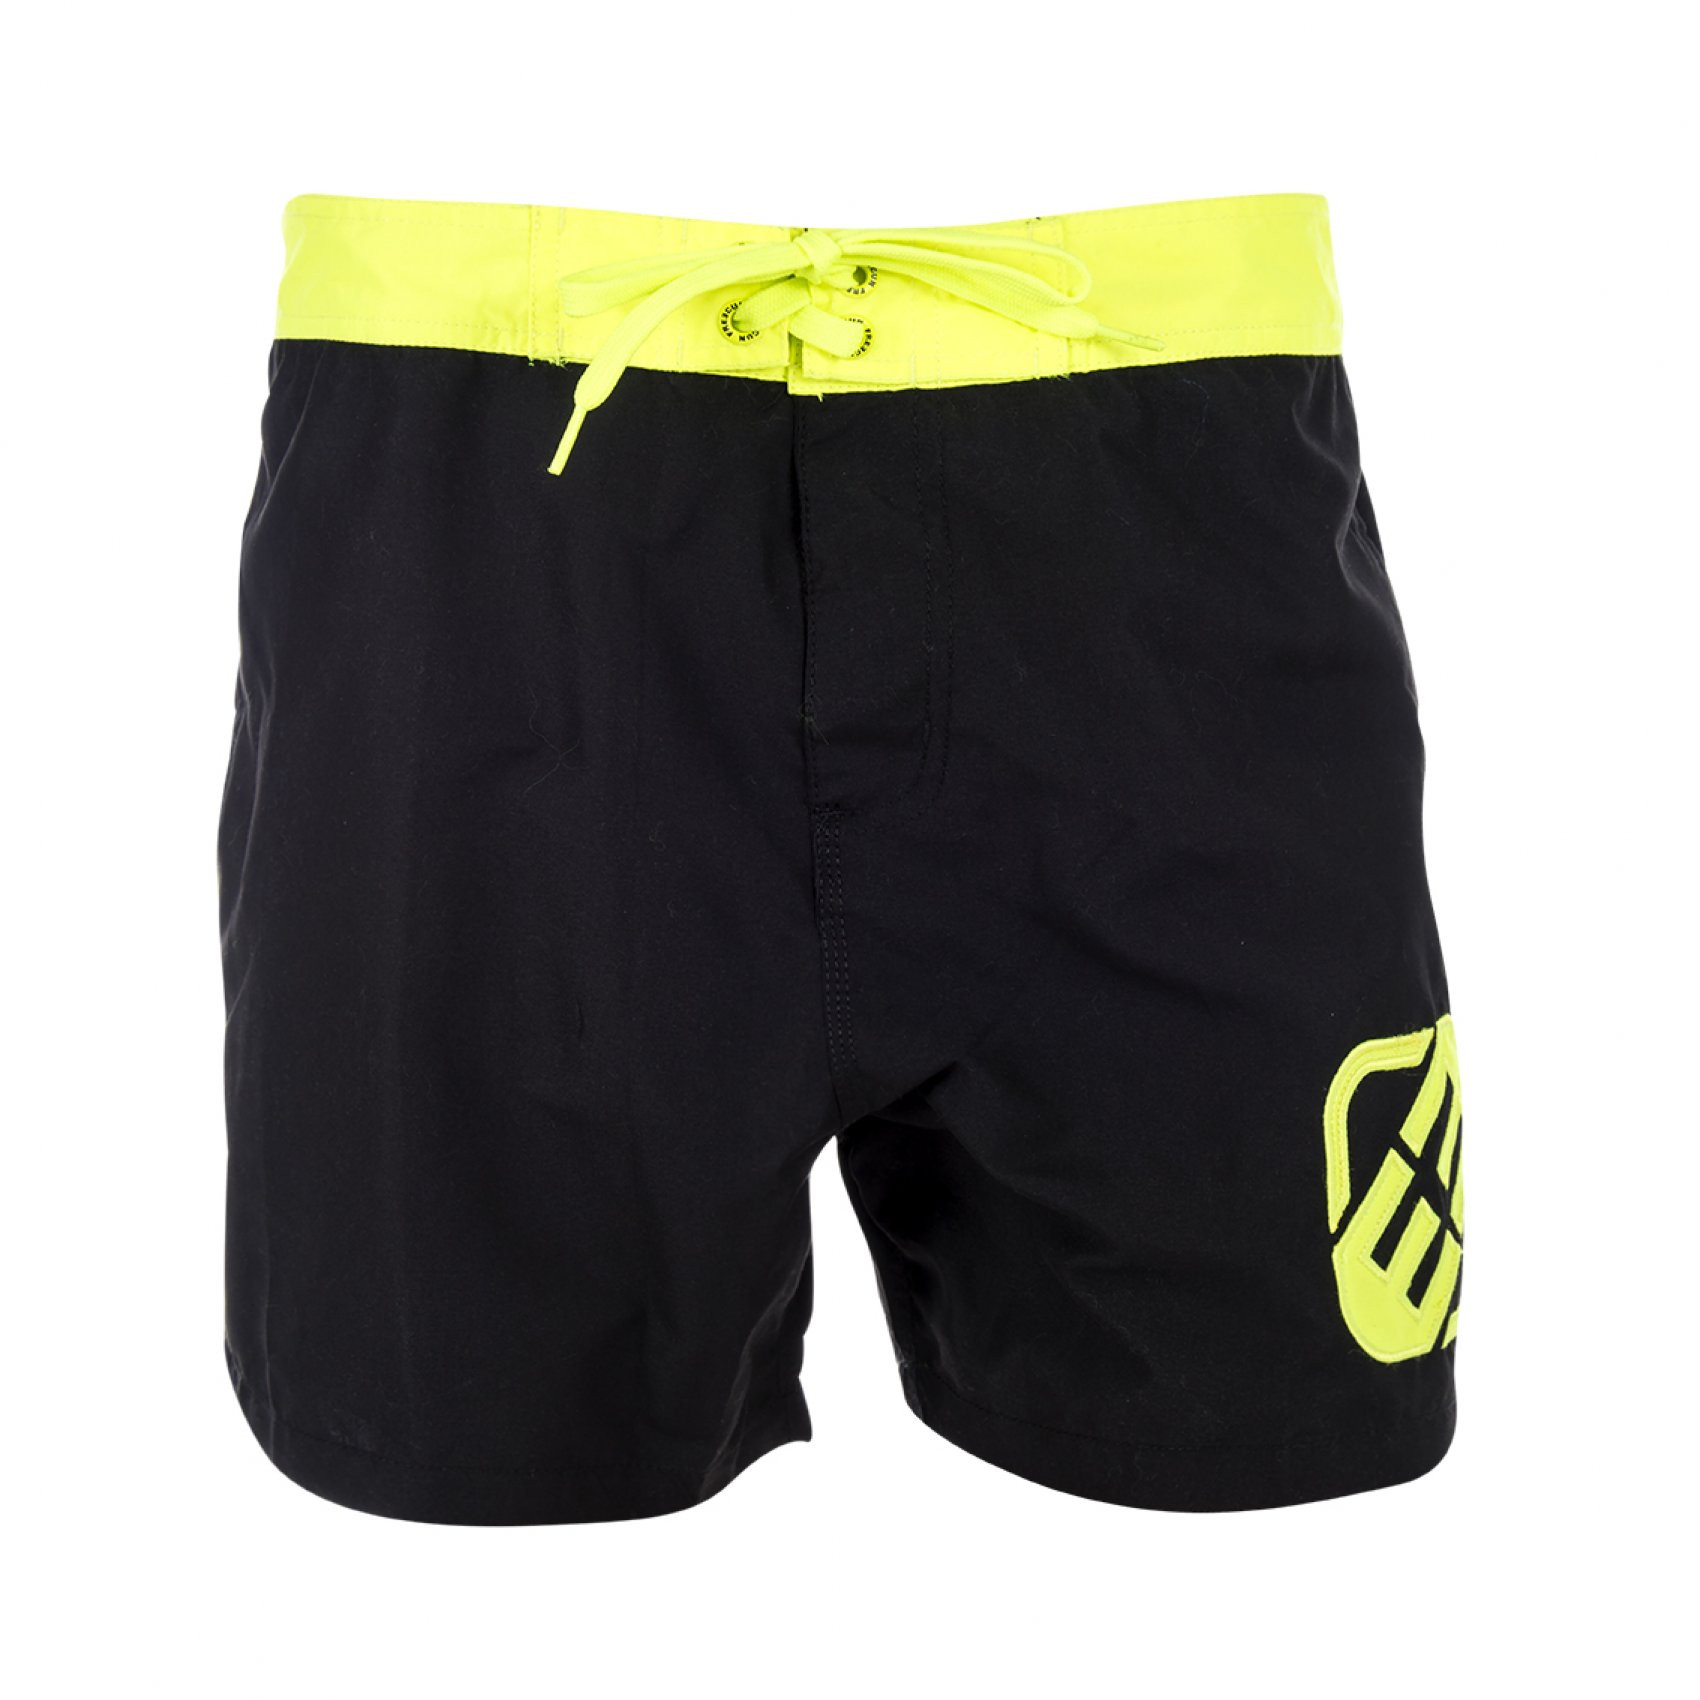 Boardshort court freegun boyz jaune (photo)